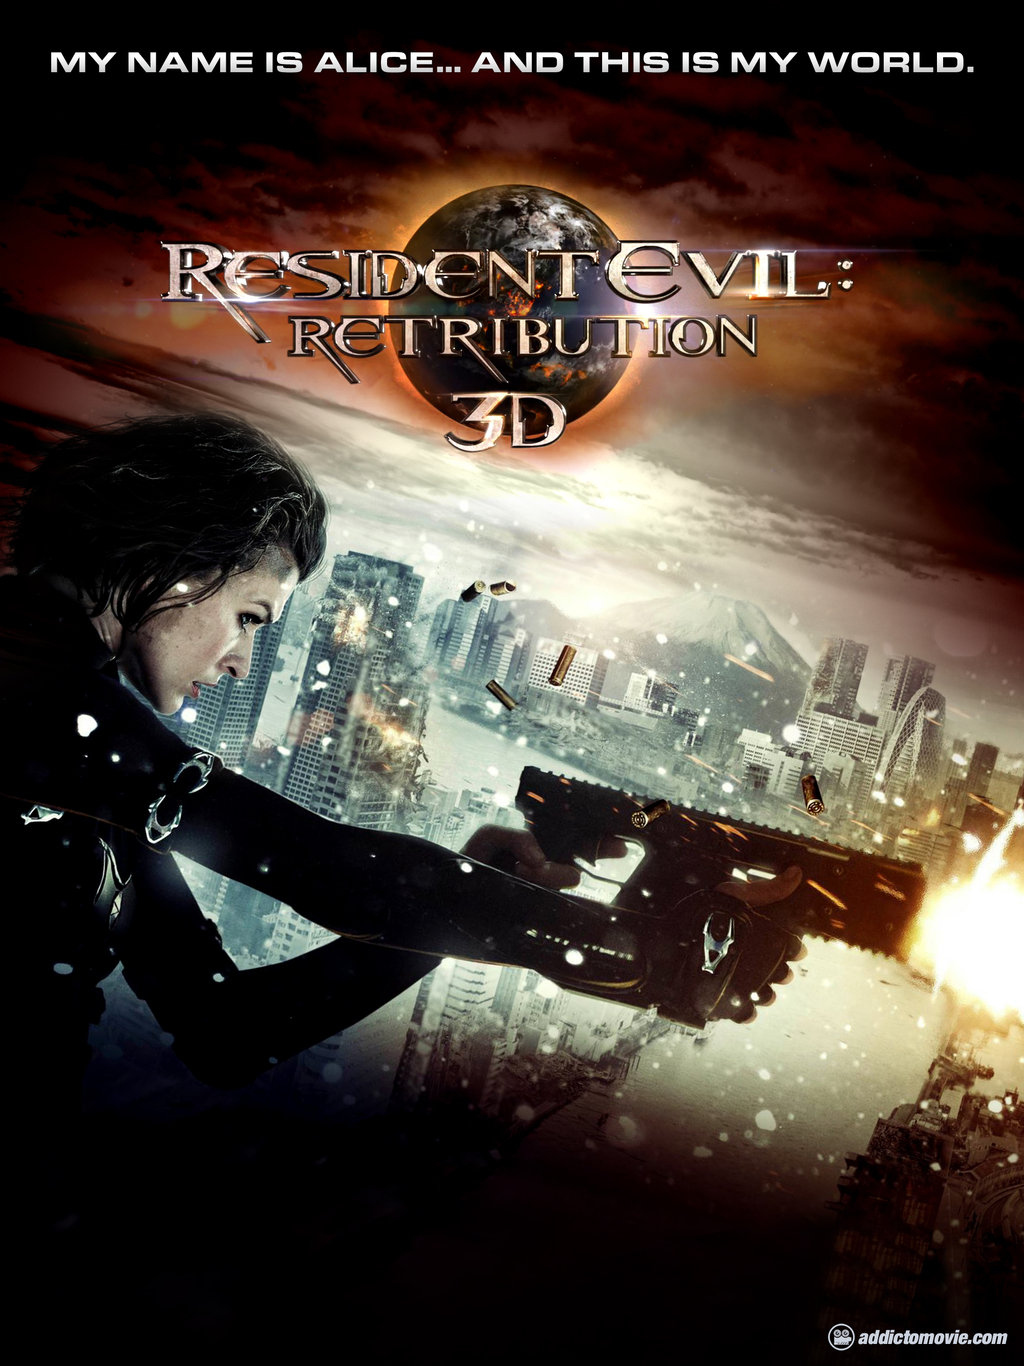 Resident evil retribution movie think, that